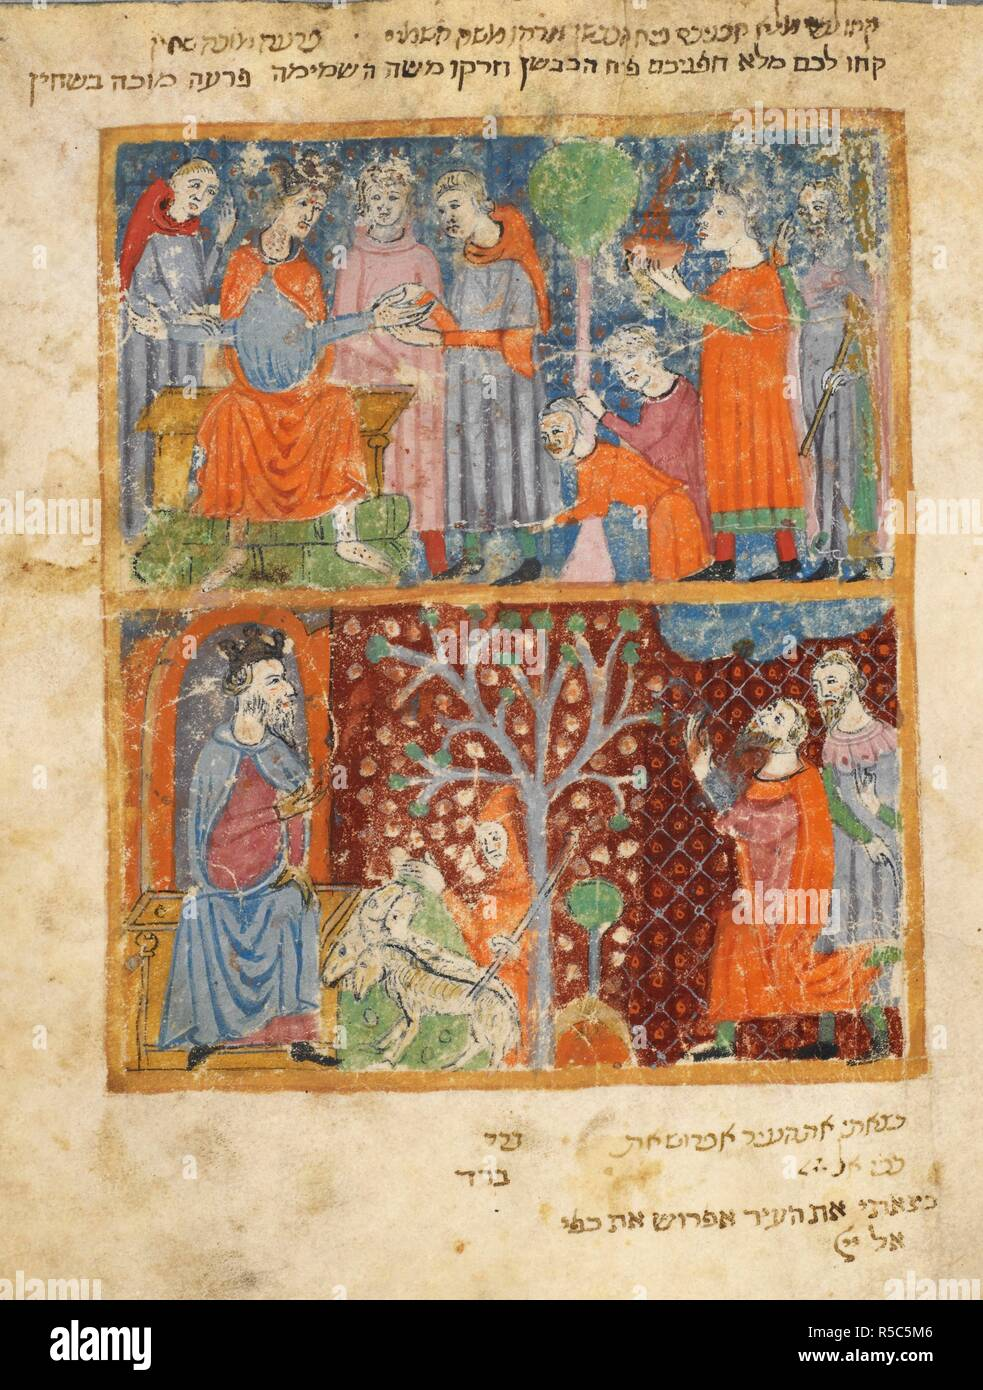 Scenes from the old testament from the 'Haggadah Pesach', or liturgy of the Jewish Passover, with grotesque initials and gilt headings. Sister Haggadah. Catalonia, mid 14th century. Source: Or. 2884, f.15. Language: Hebrew. - Stock Image